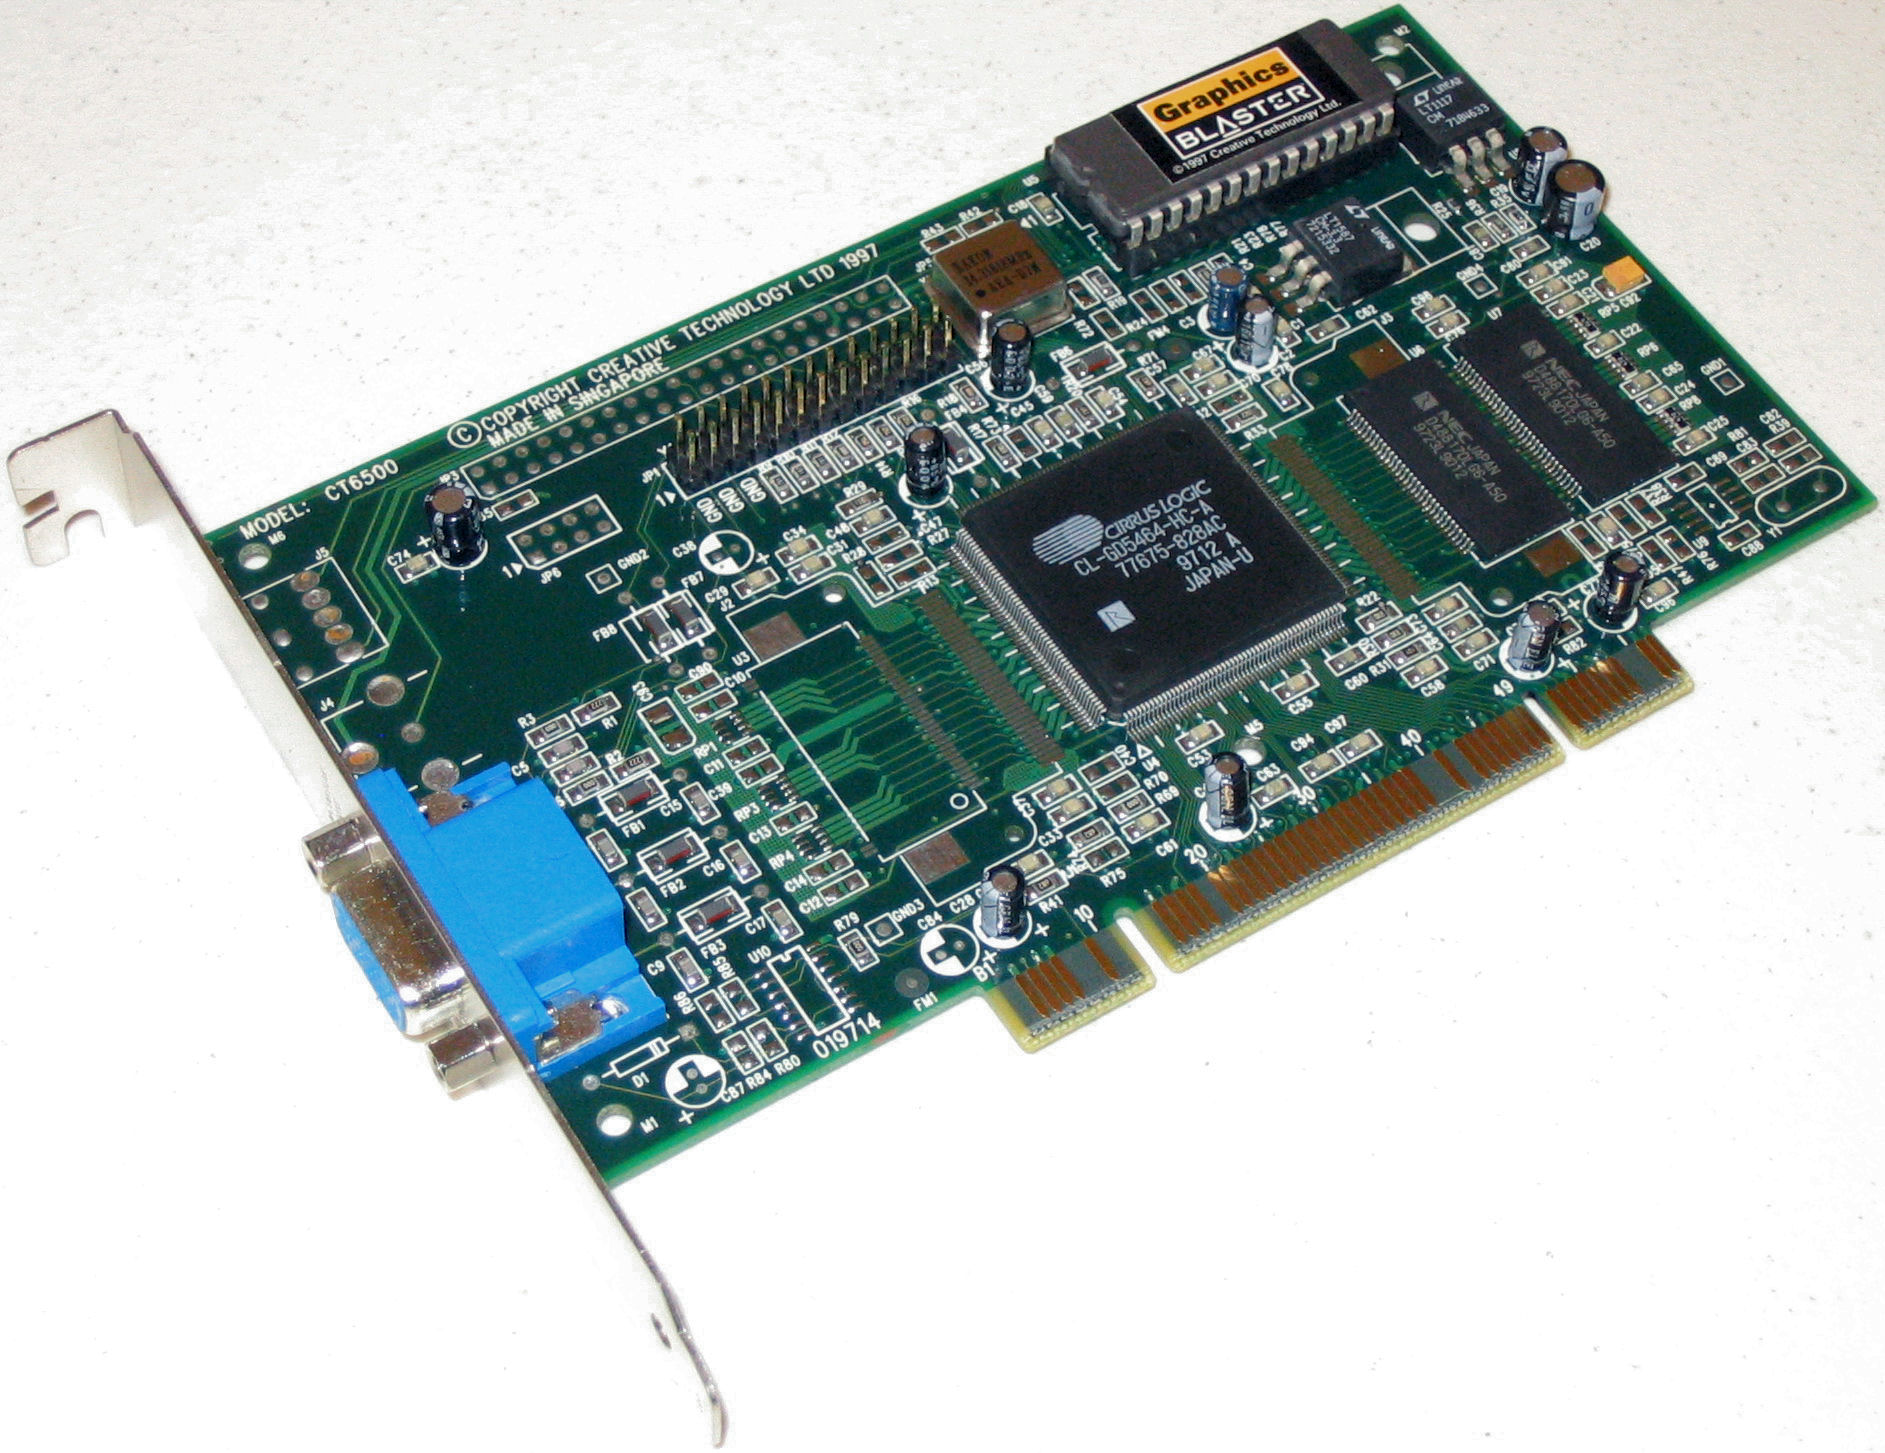 CIRRUS LOGIC 5465 VGA WINDOWS 7 64 DRIVER